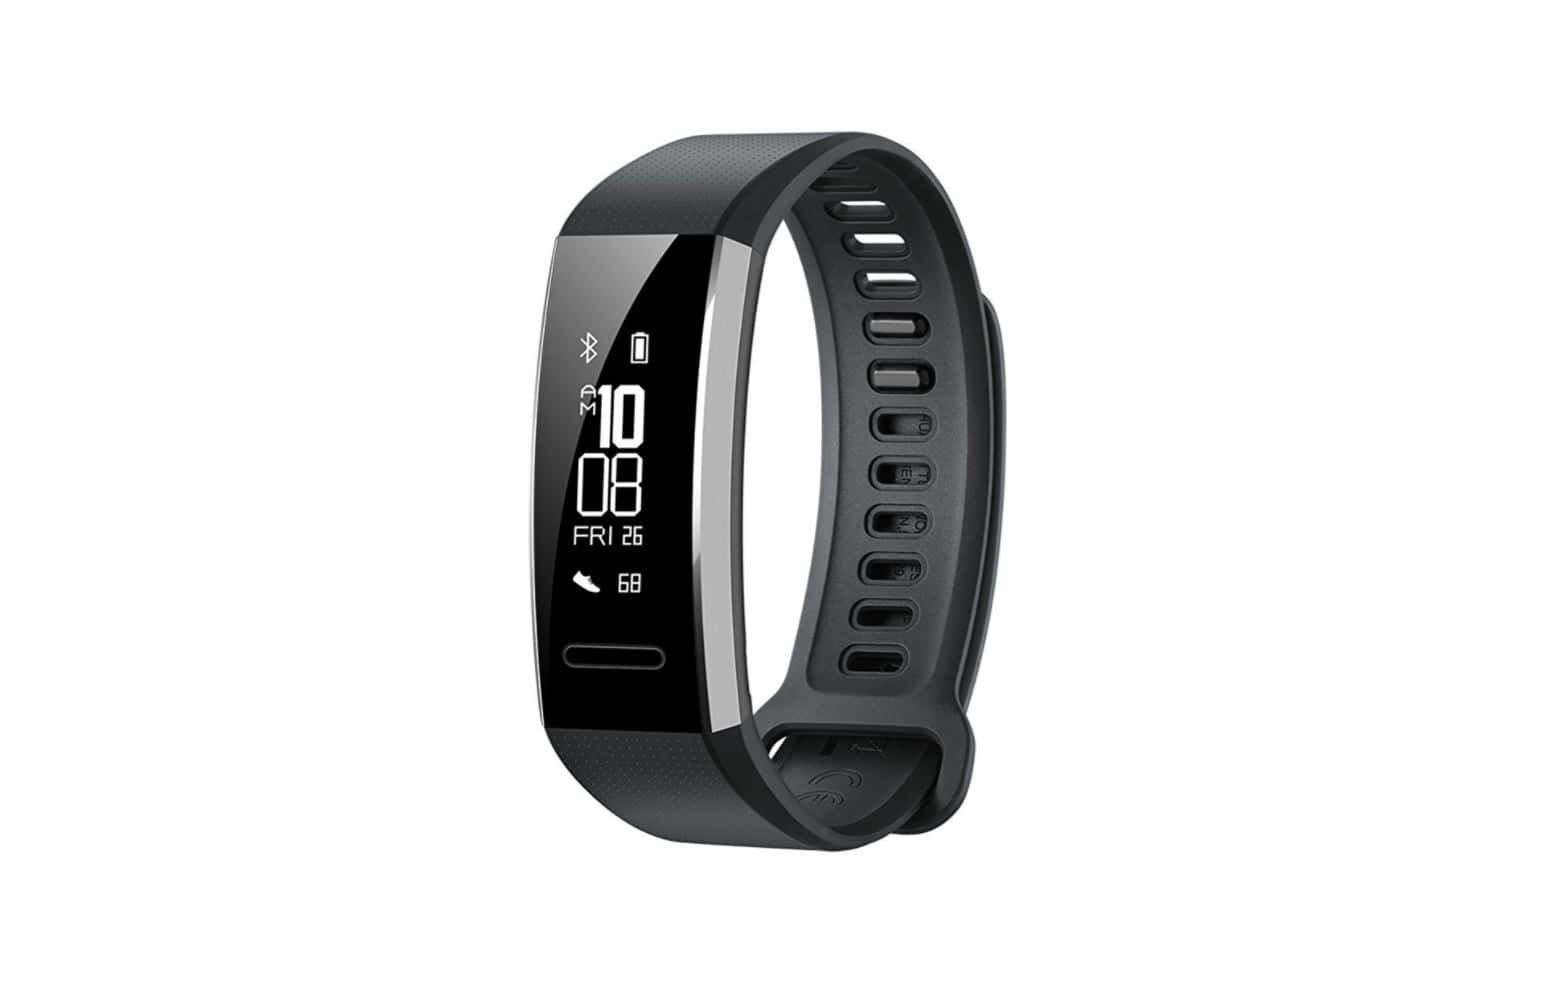 Huawei Band 2 Series Arrives To India Pricing Starts At 71 Best Fitness Band Fitness Tracker Fitness Gadgets